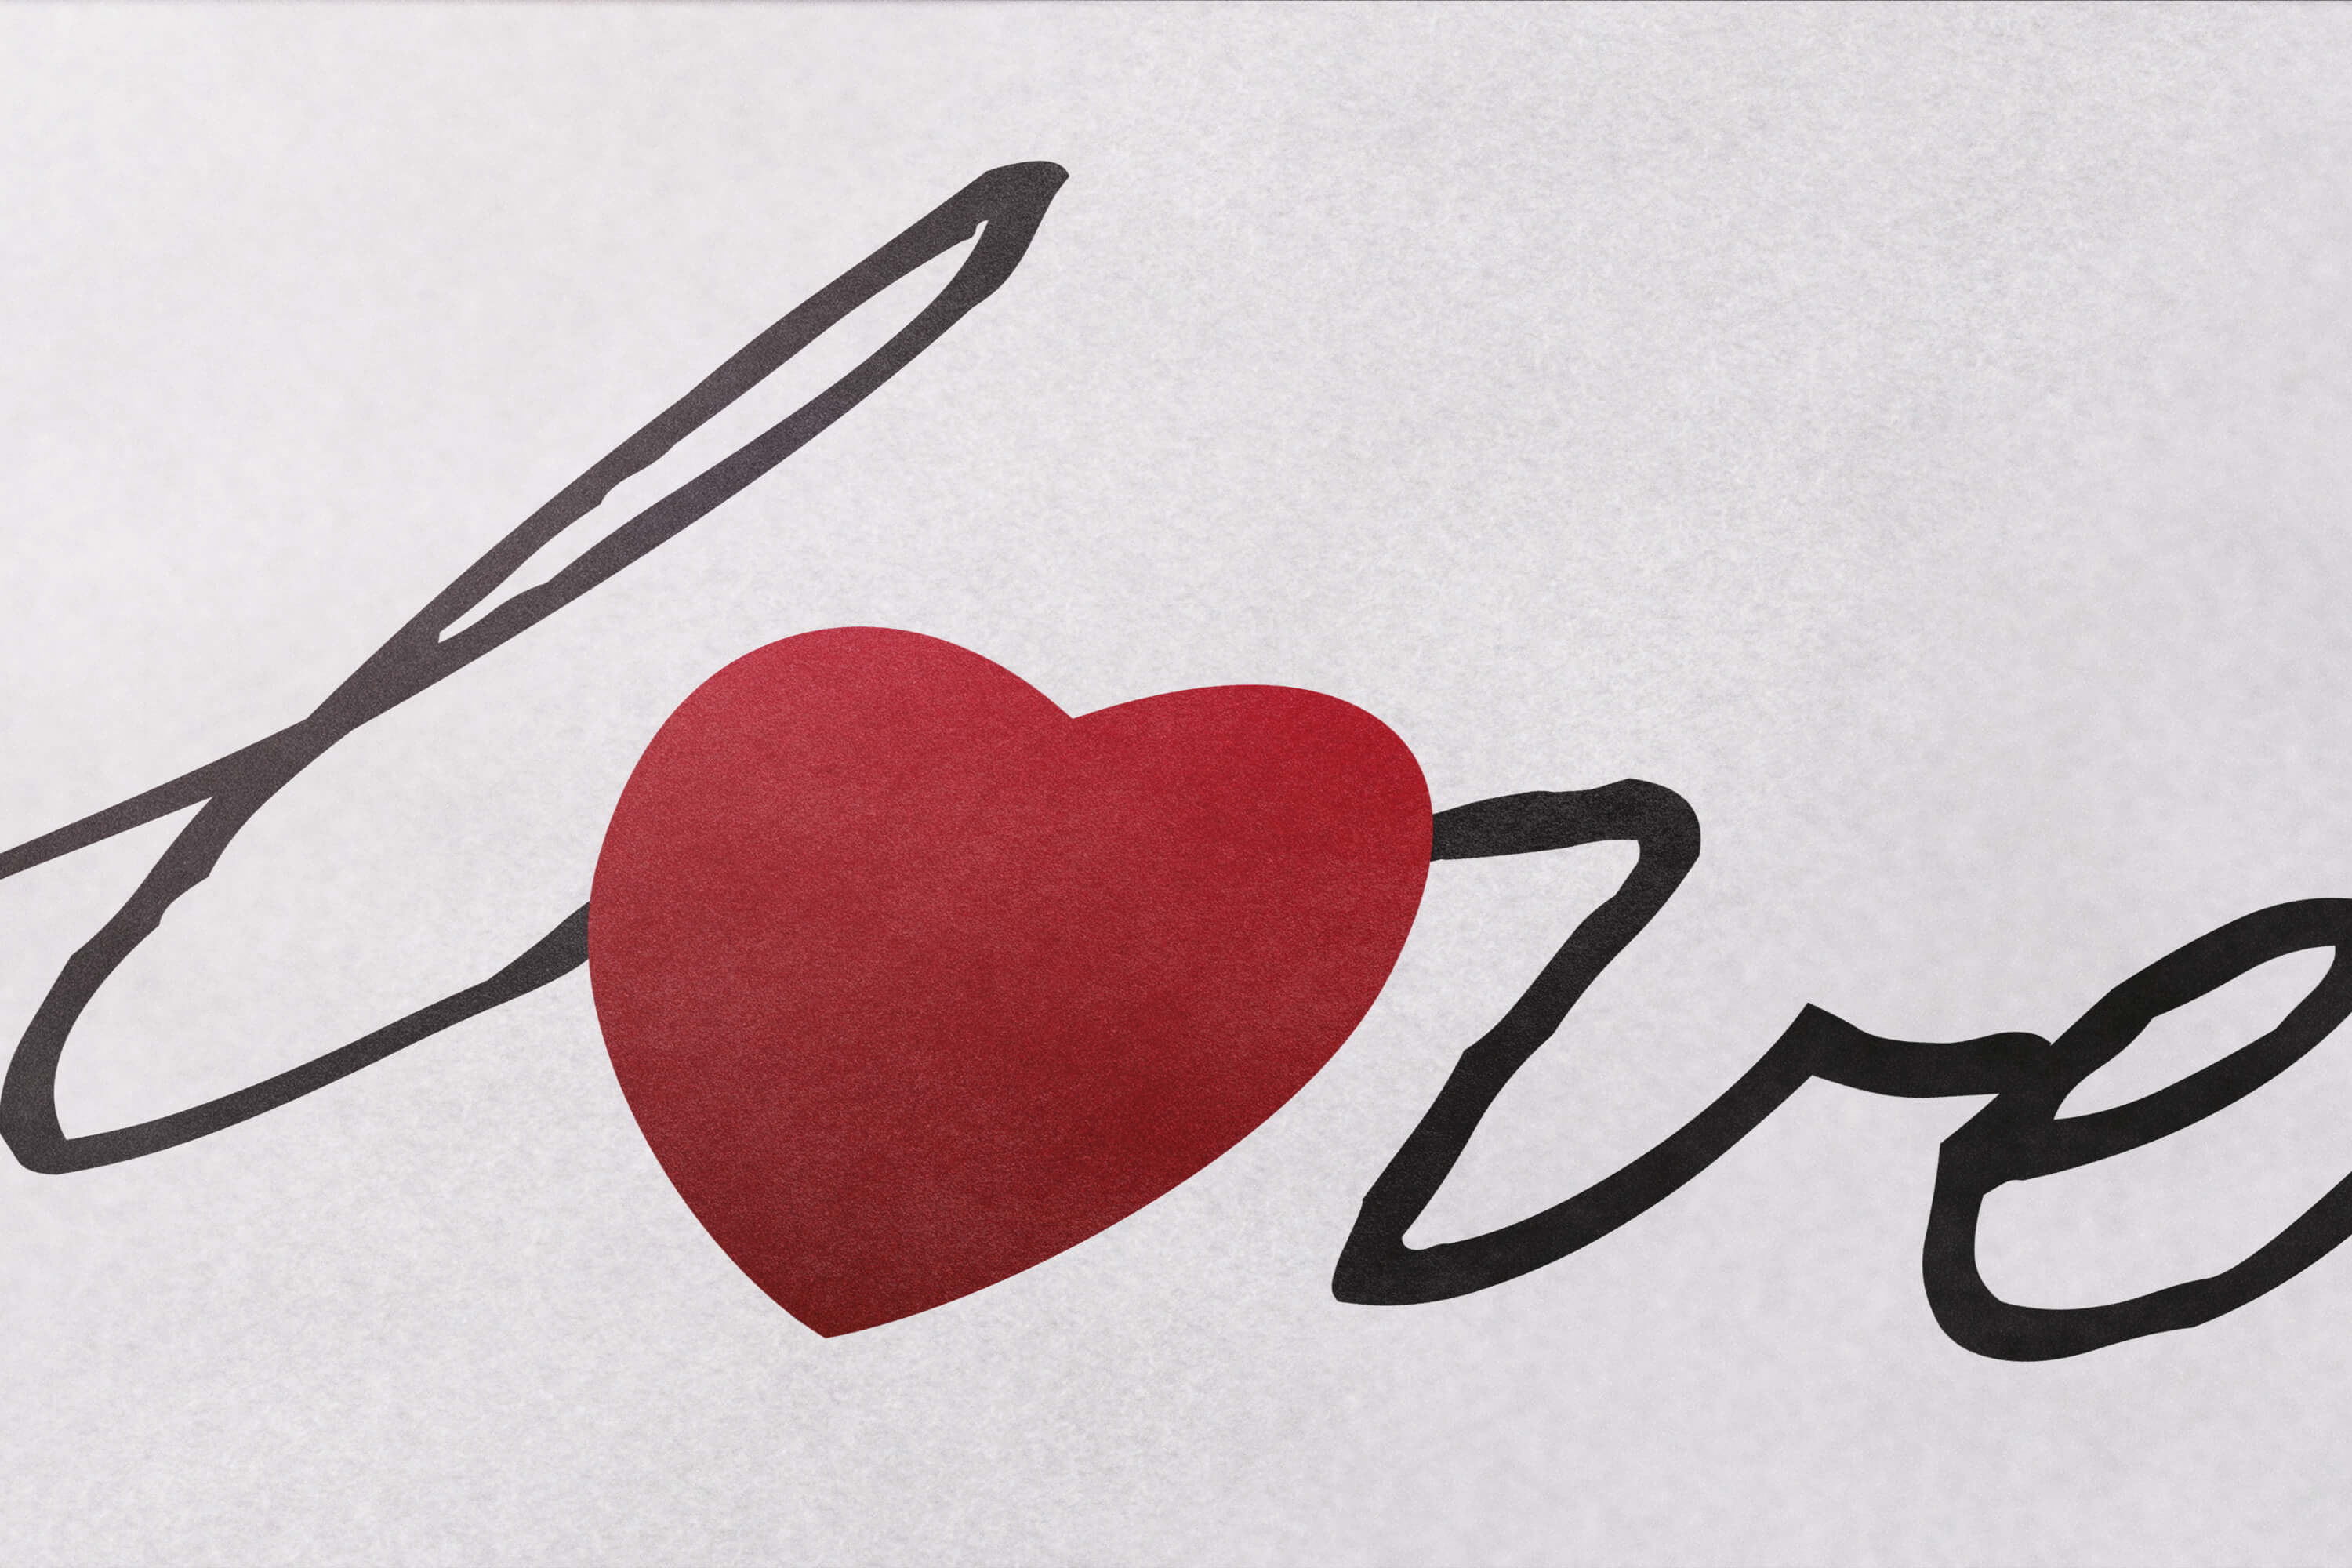 Close up showing detail of the Lovework logo design